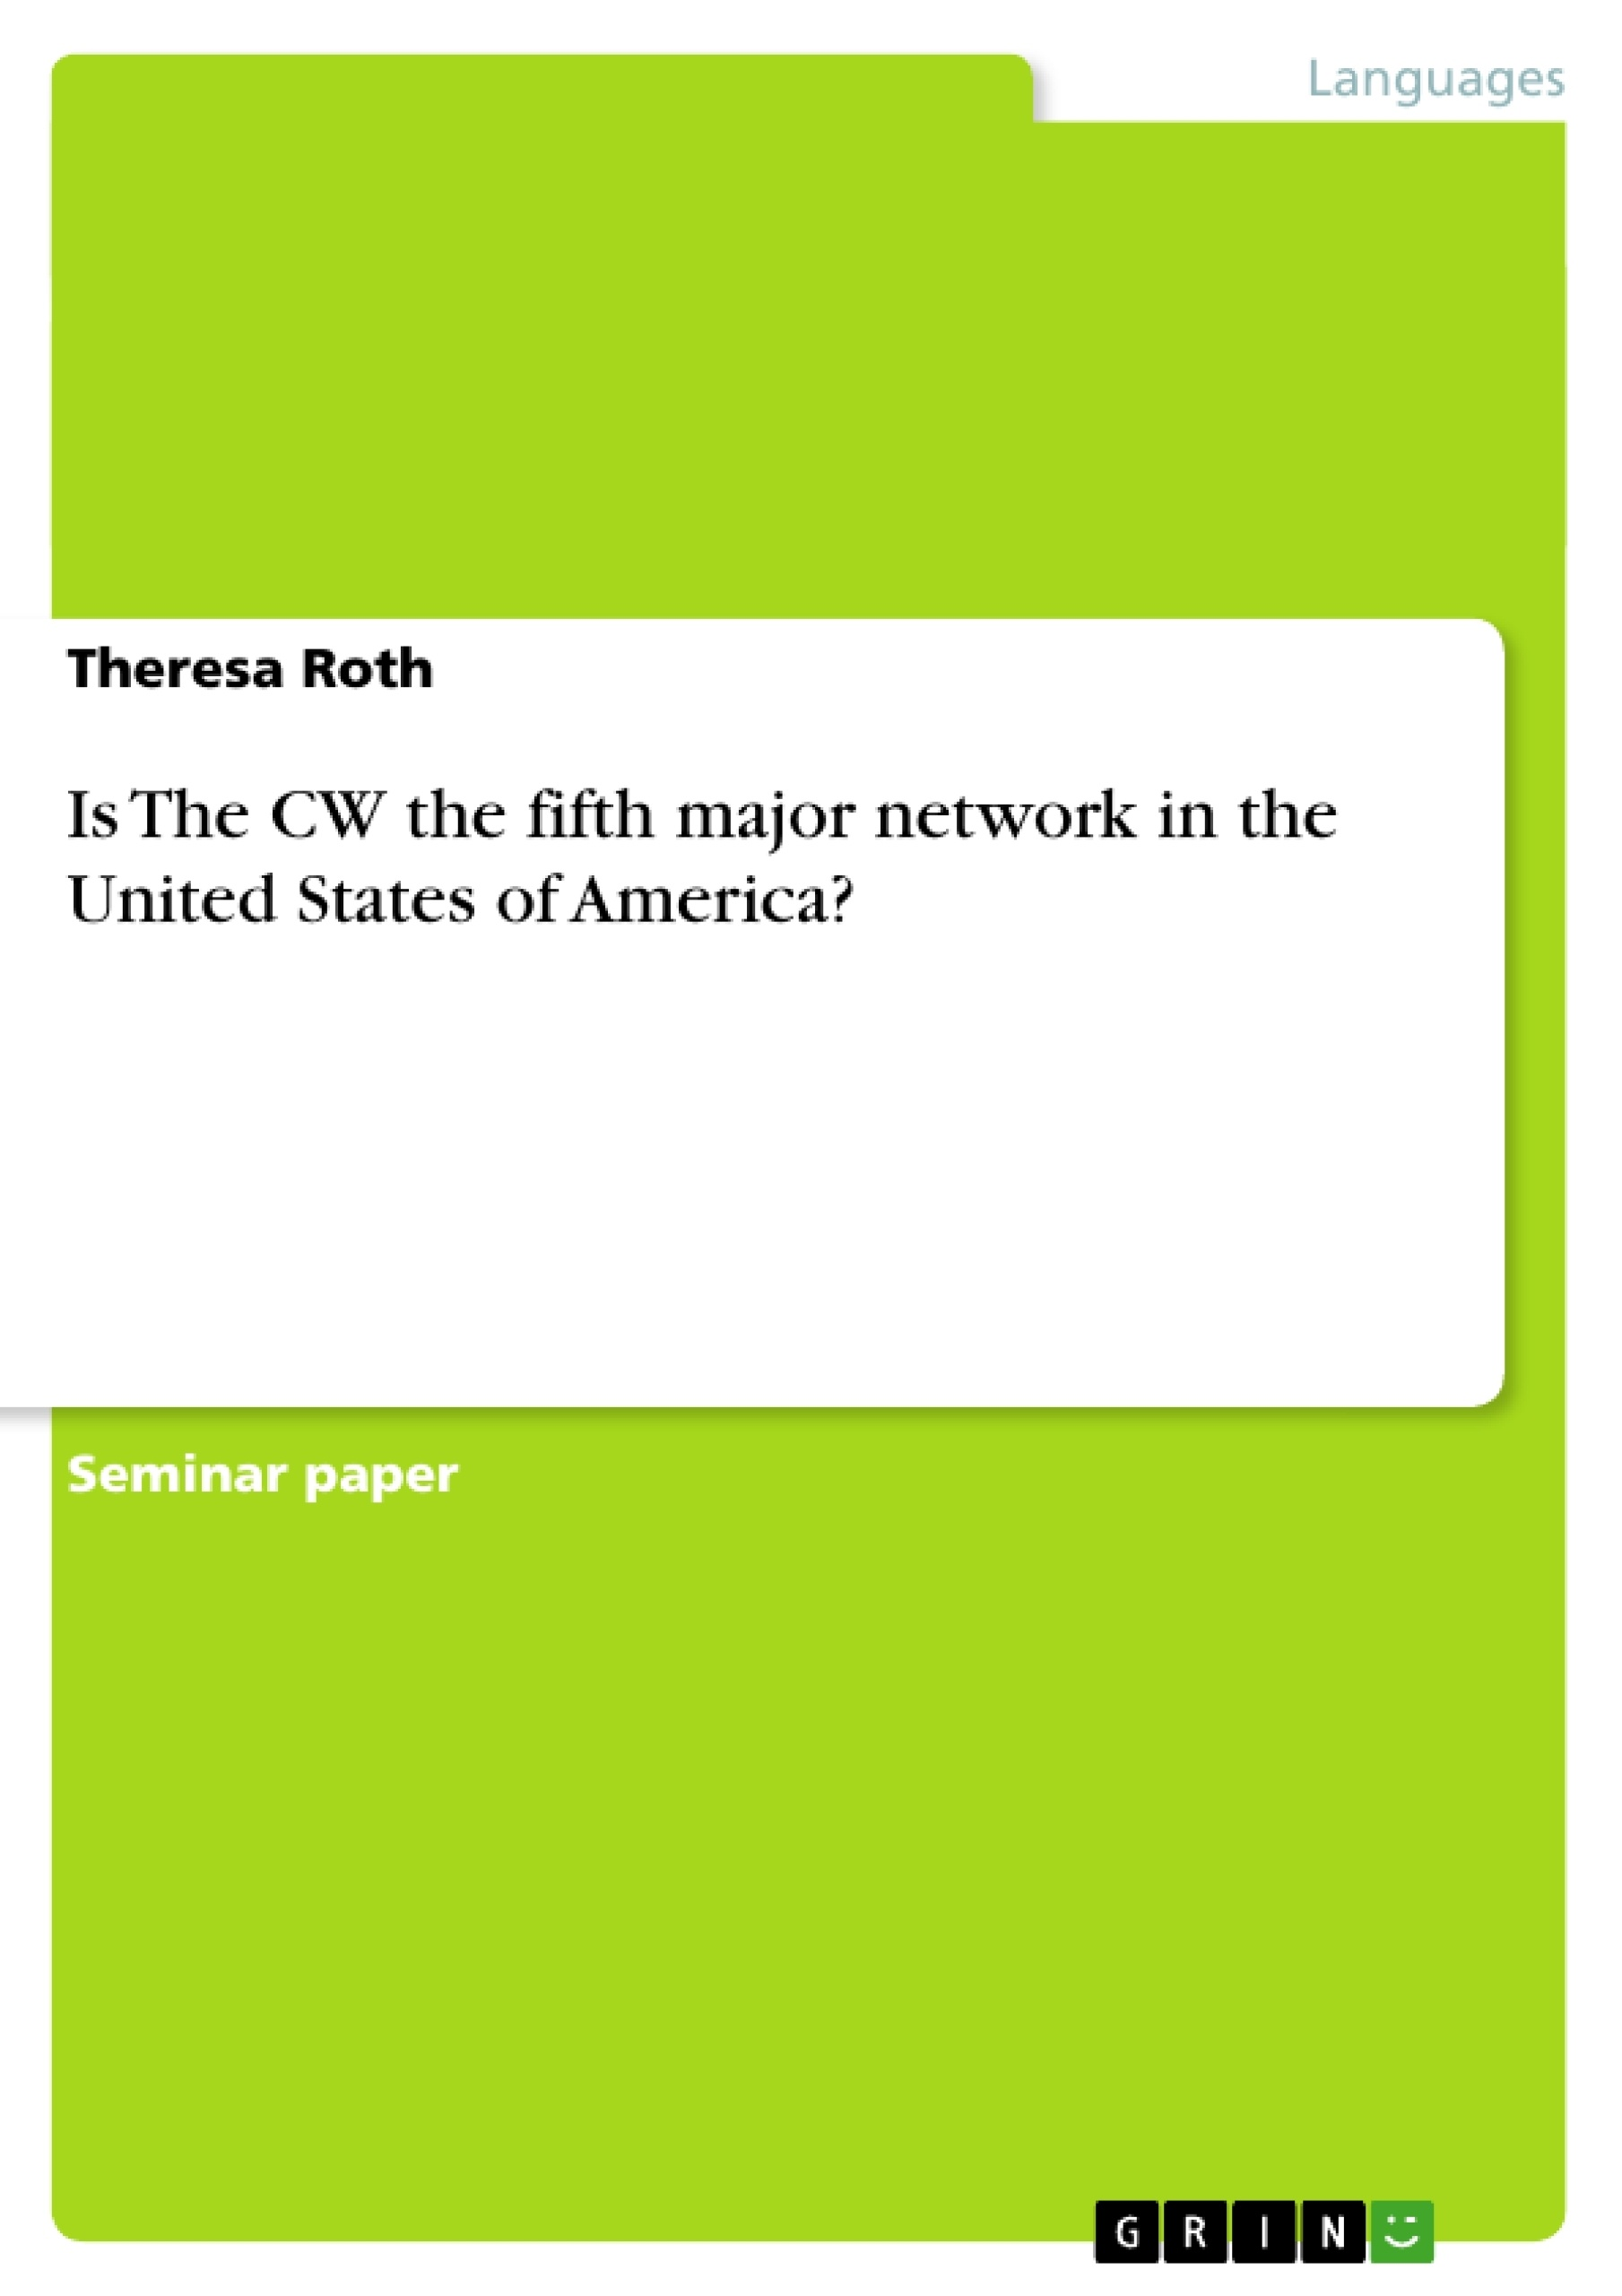 Title: Is The CW the fifth major network in the United States of America?